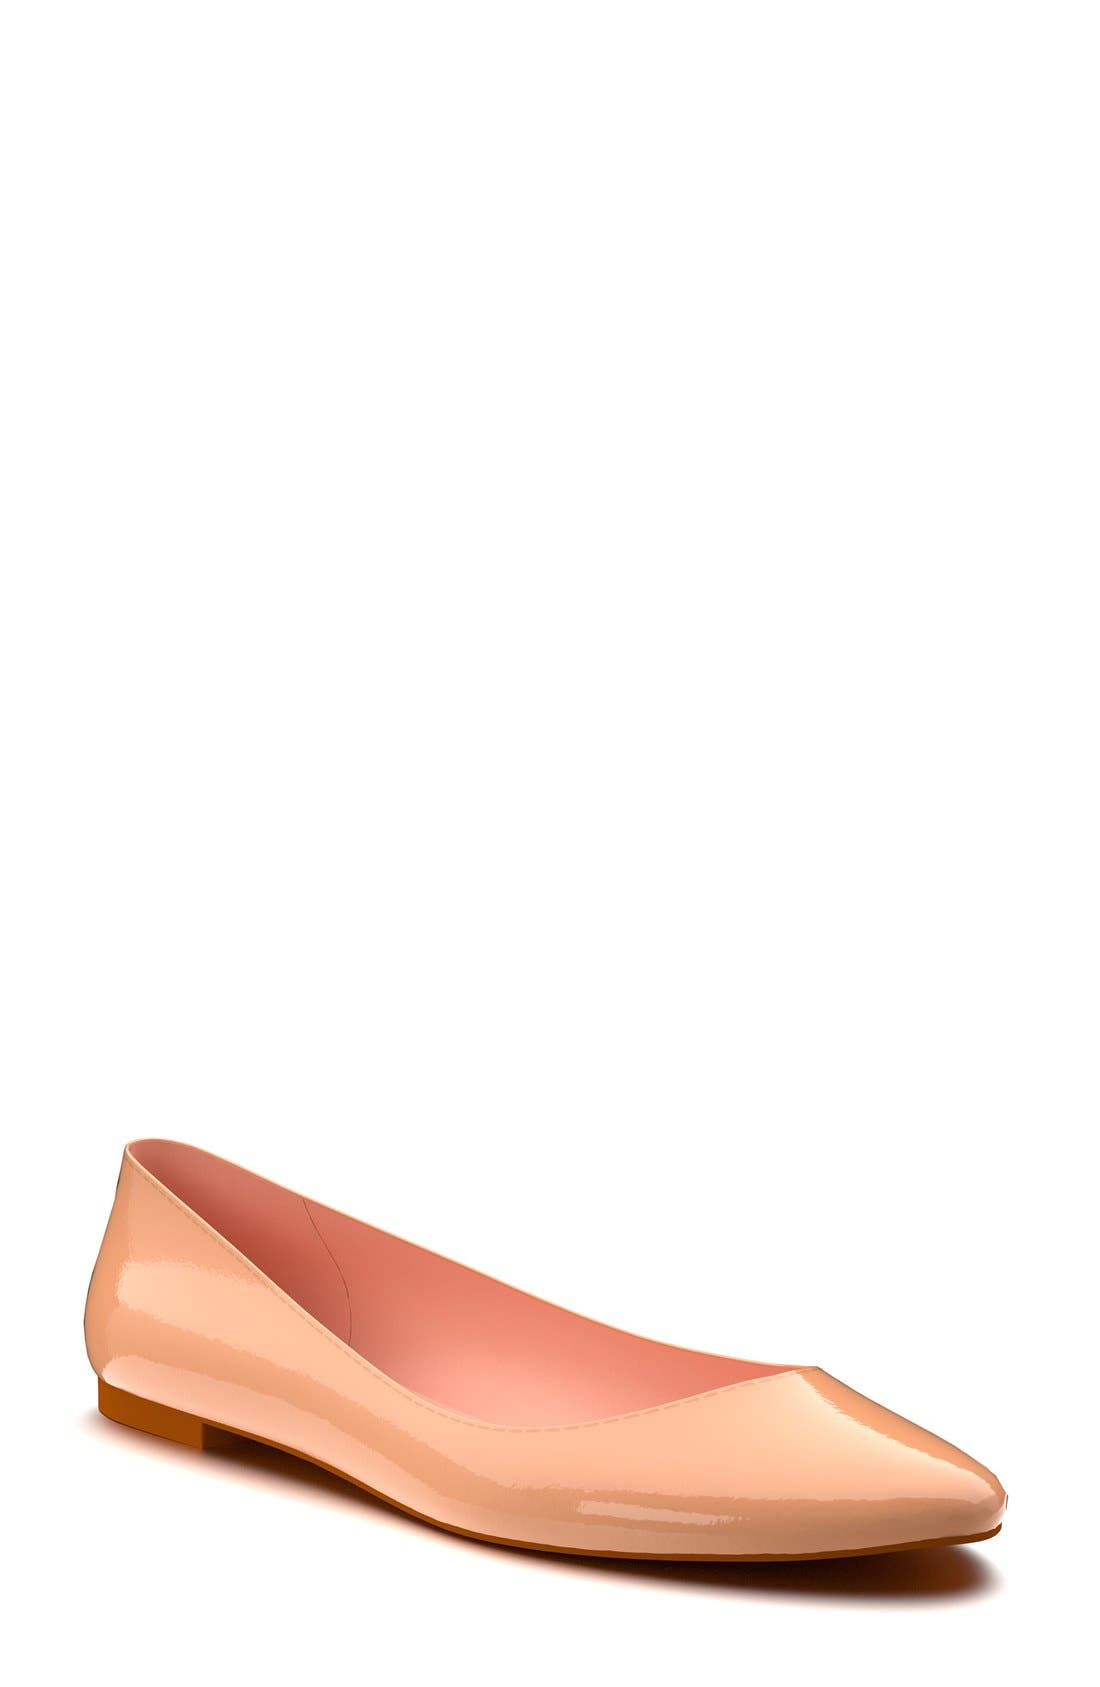 SHOES OF PREY Ballet Flat